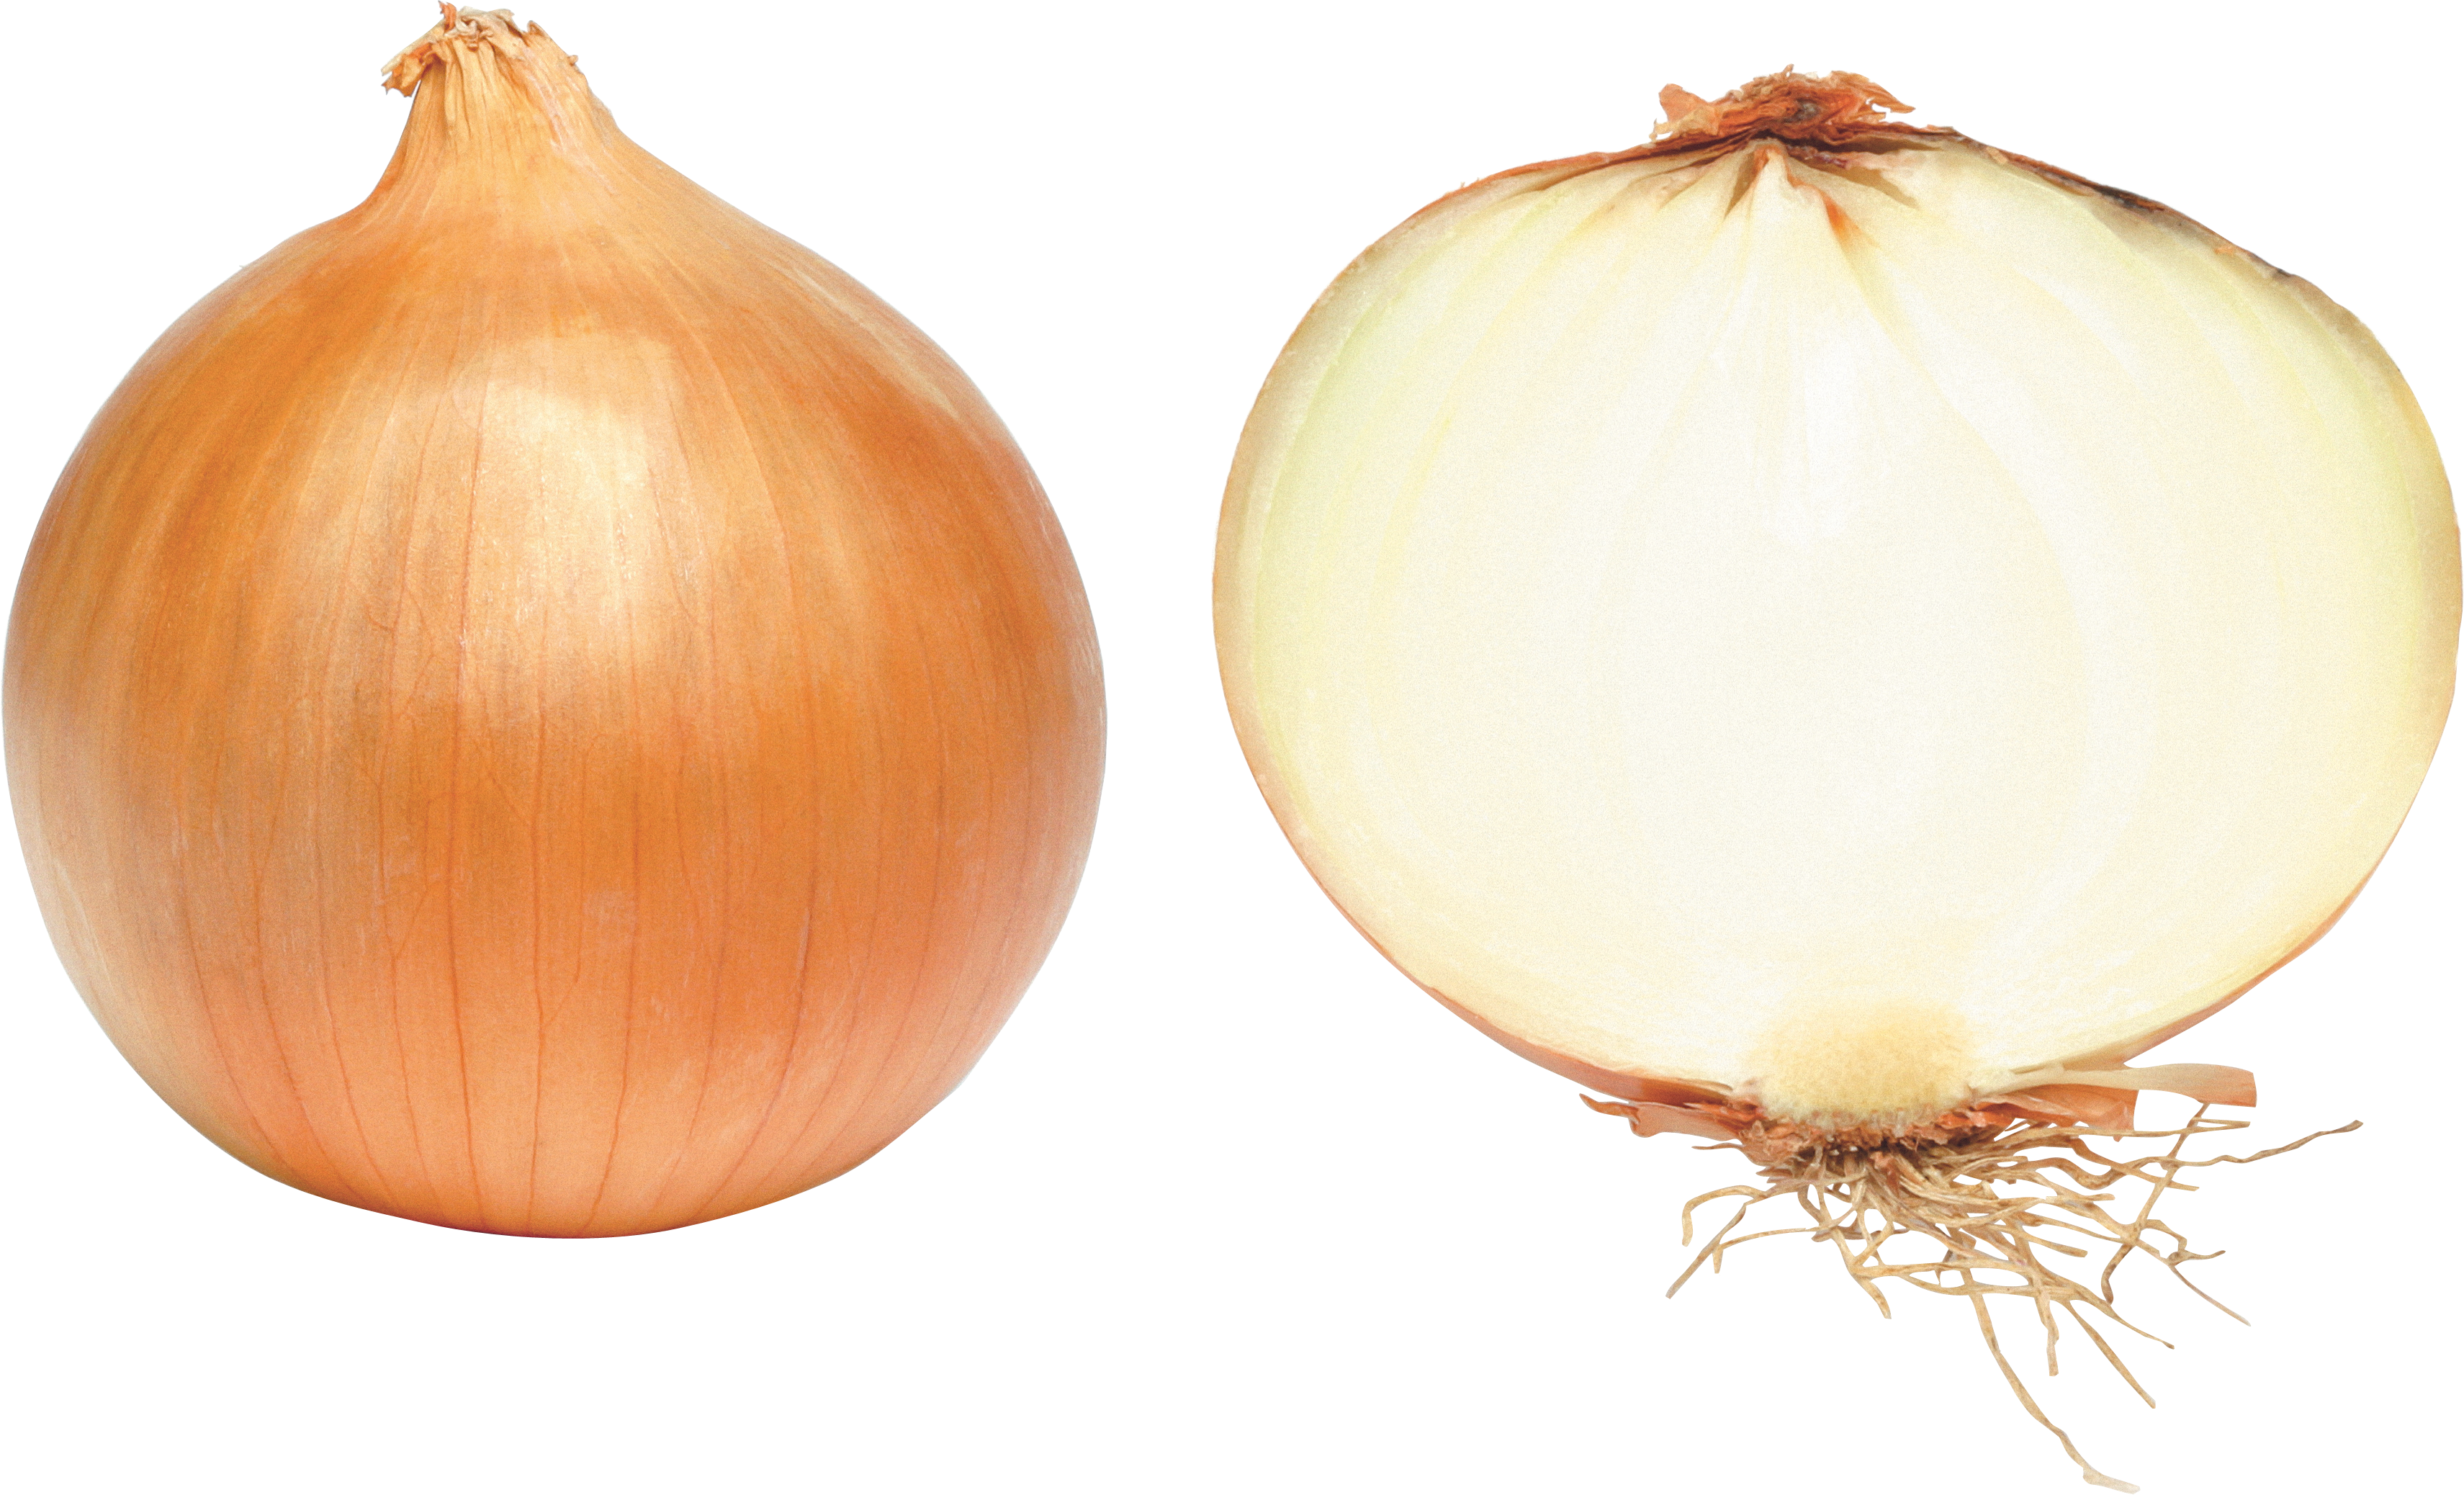 Download Onion Latest Version 2018 image #38762